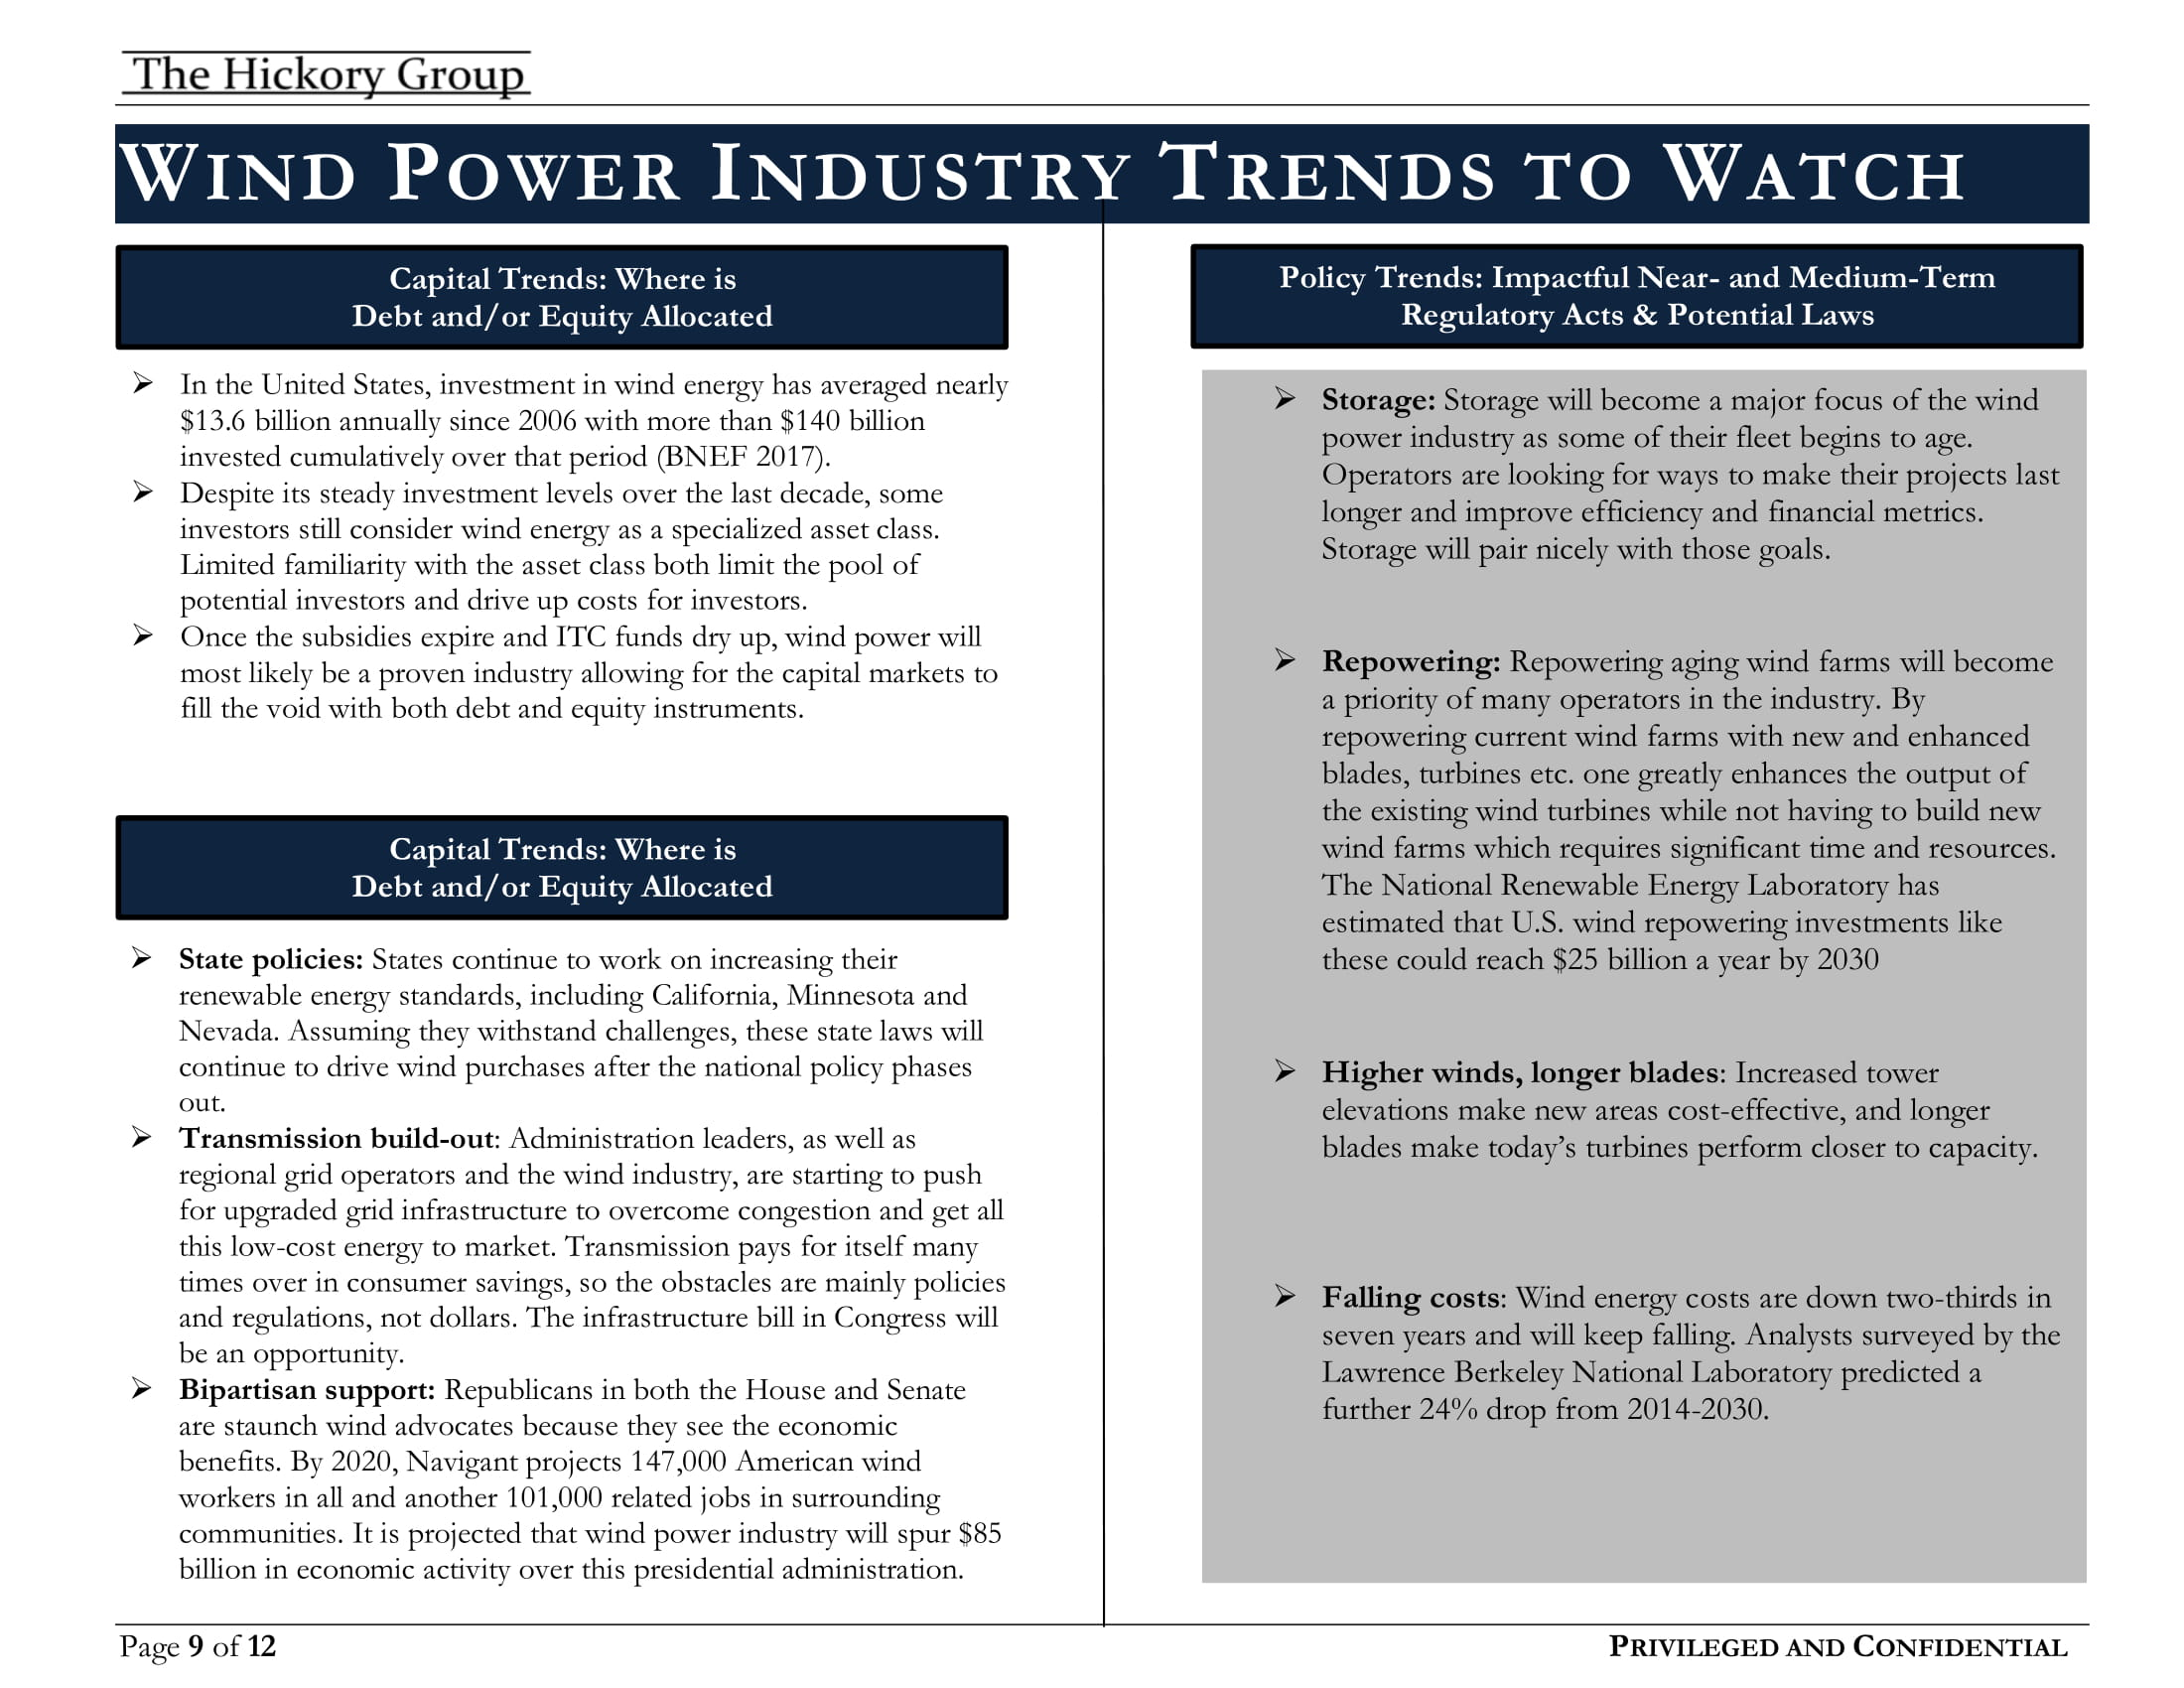 THG Wind Power Flash Report (July 2018) Privileged and Confidential copy[1]-09.jpg